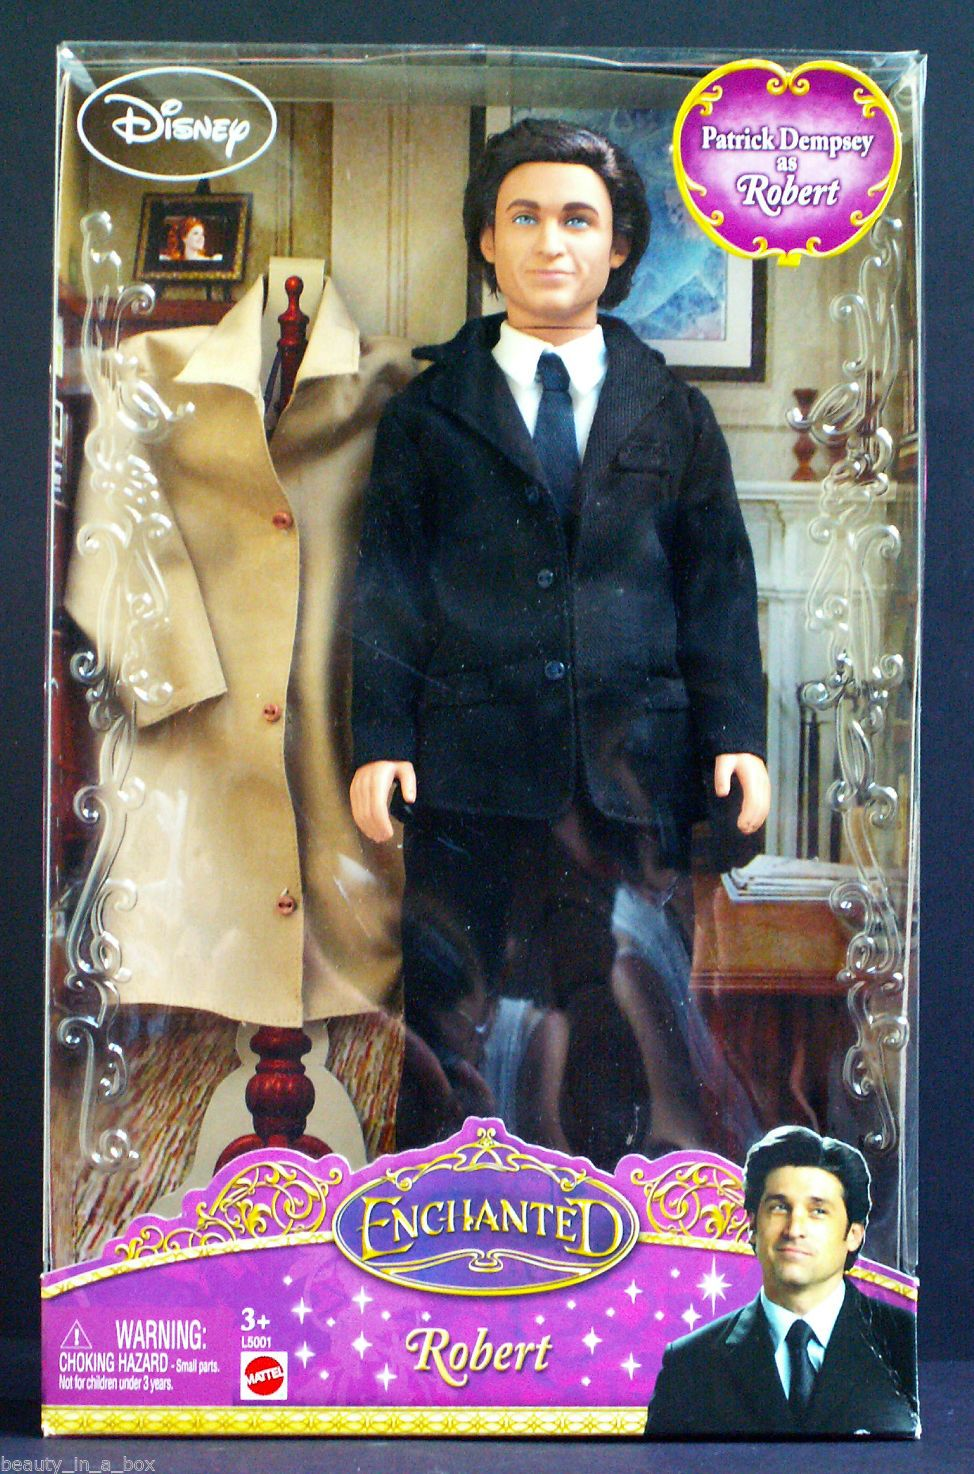 Enchanted Giselle Doll Robert Amy Adams Patrick Dempsey Disney